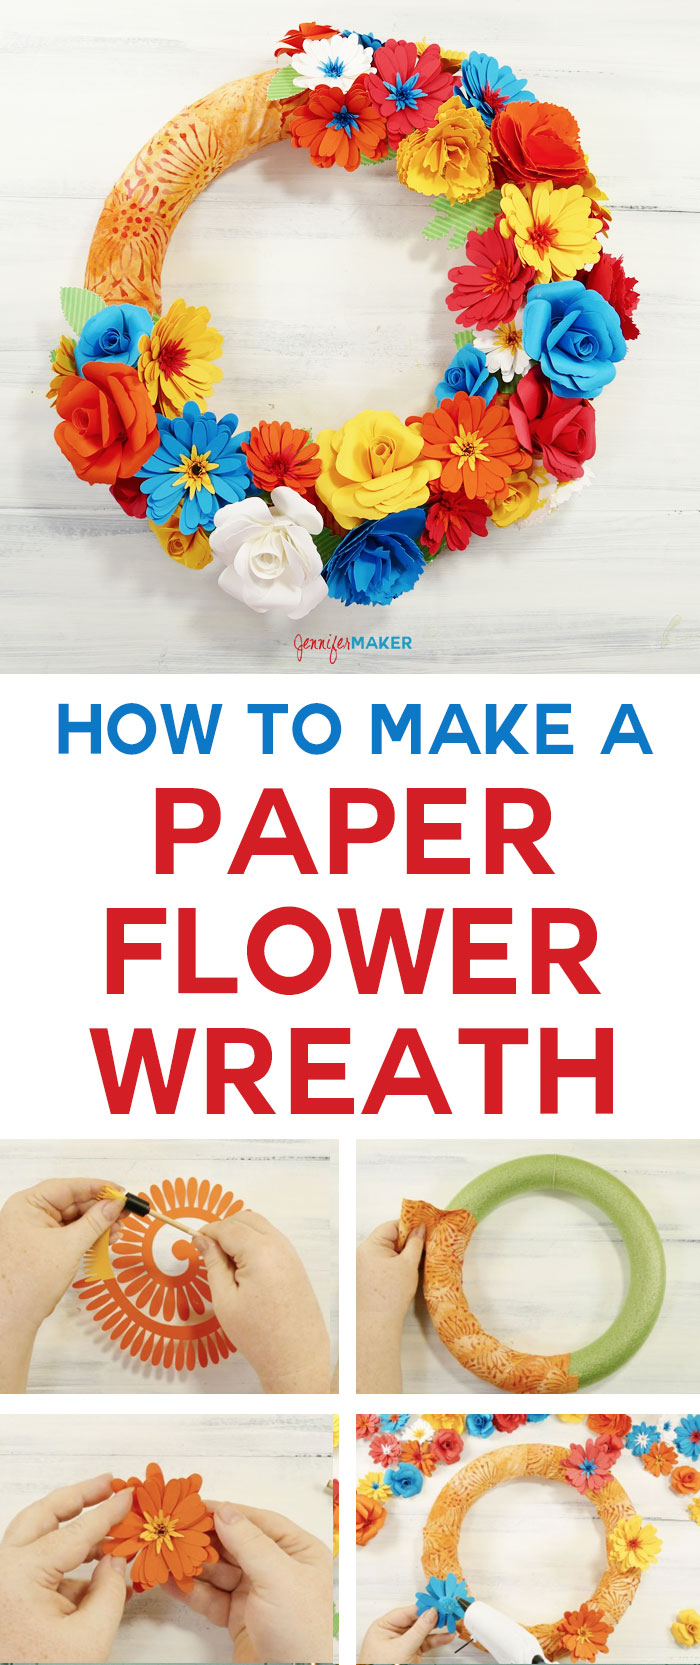 How To Make A Paper Flower Wreath The Crafty Blog Stalker